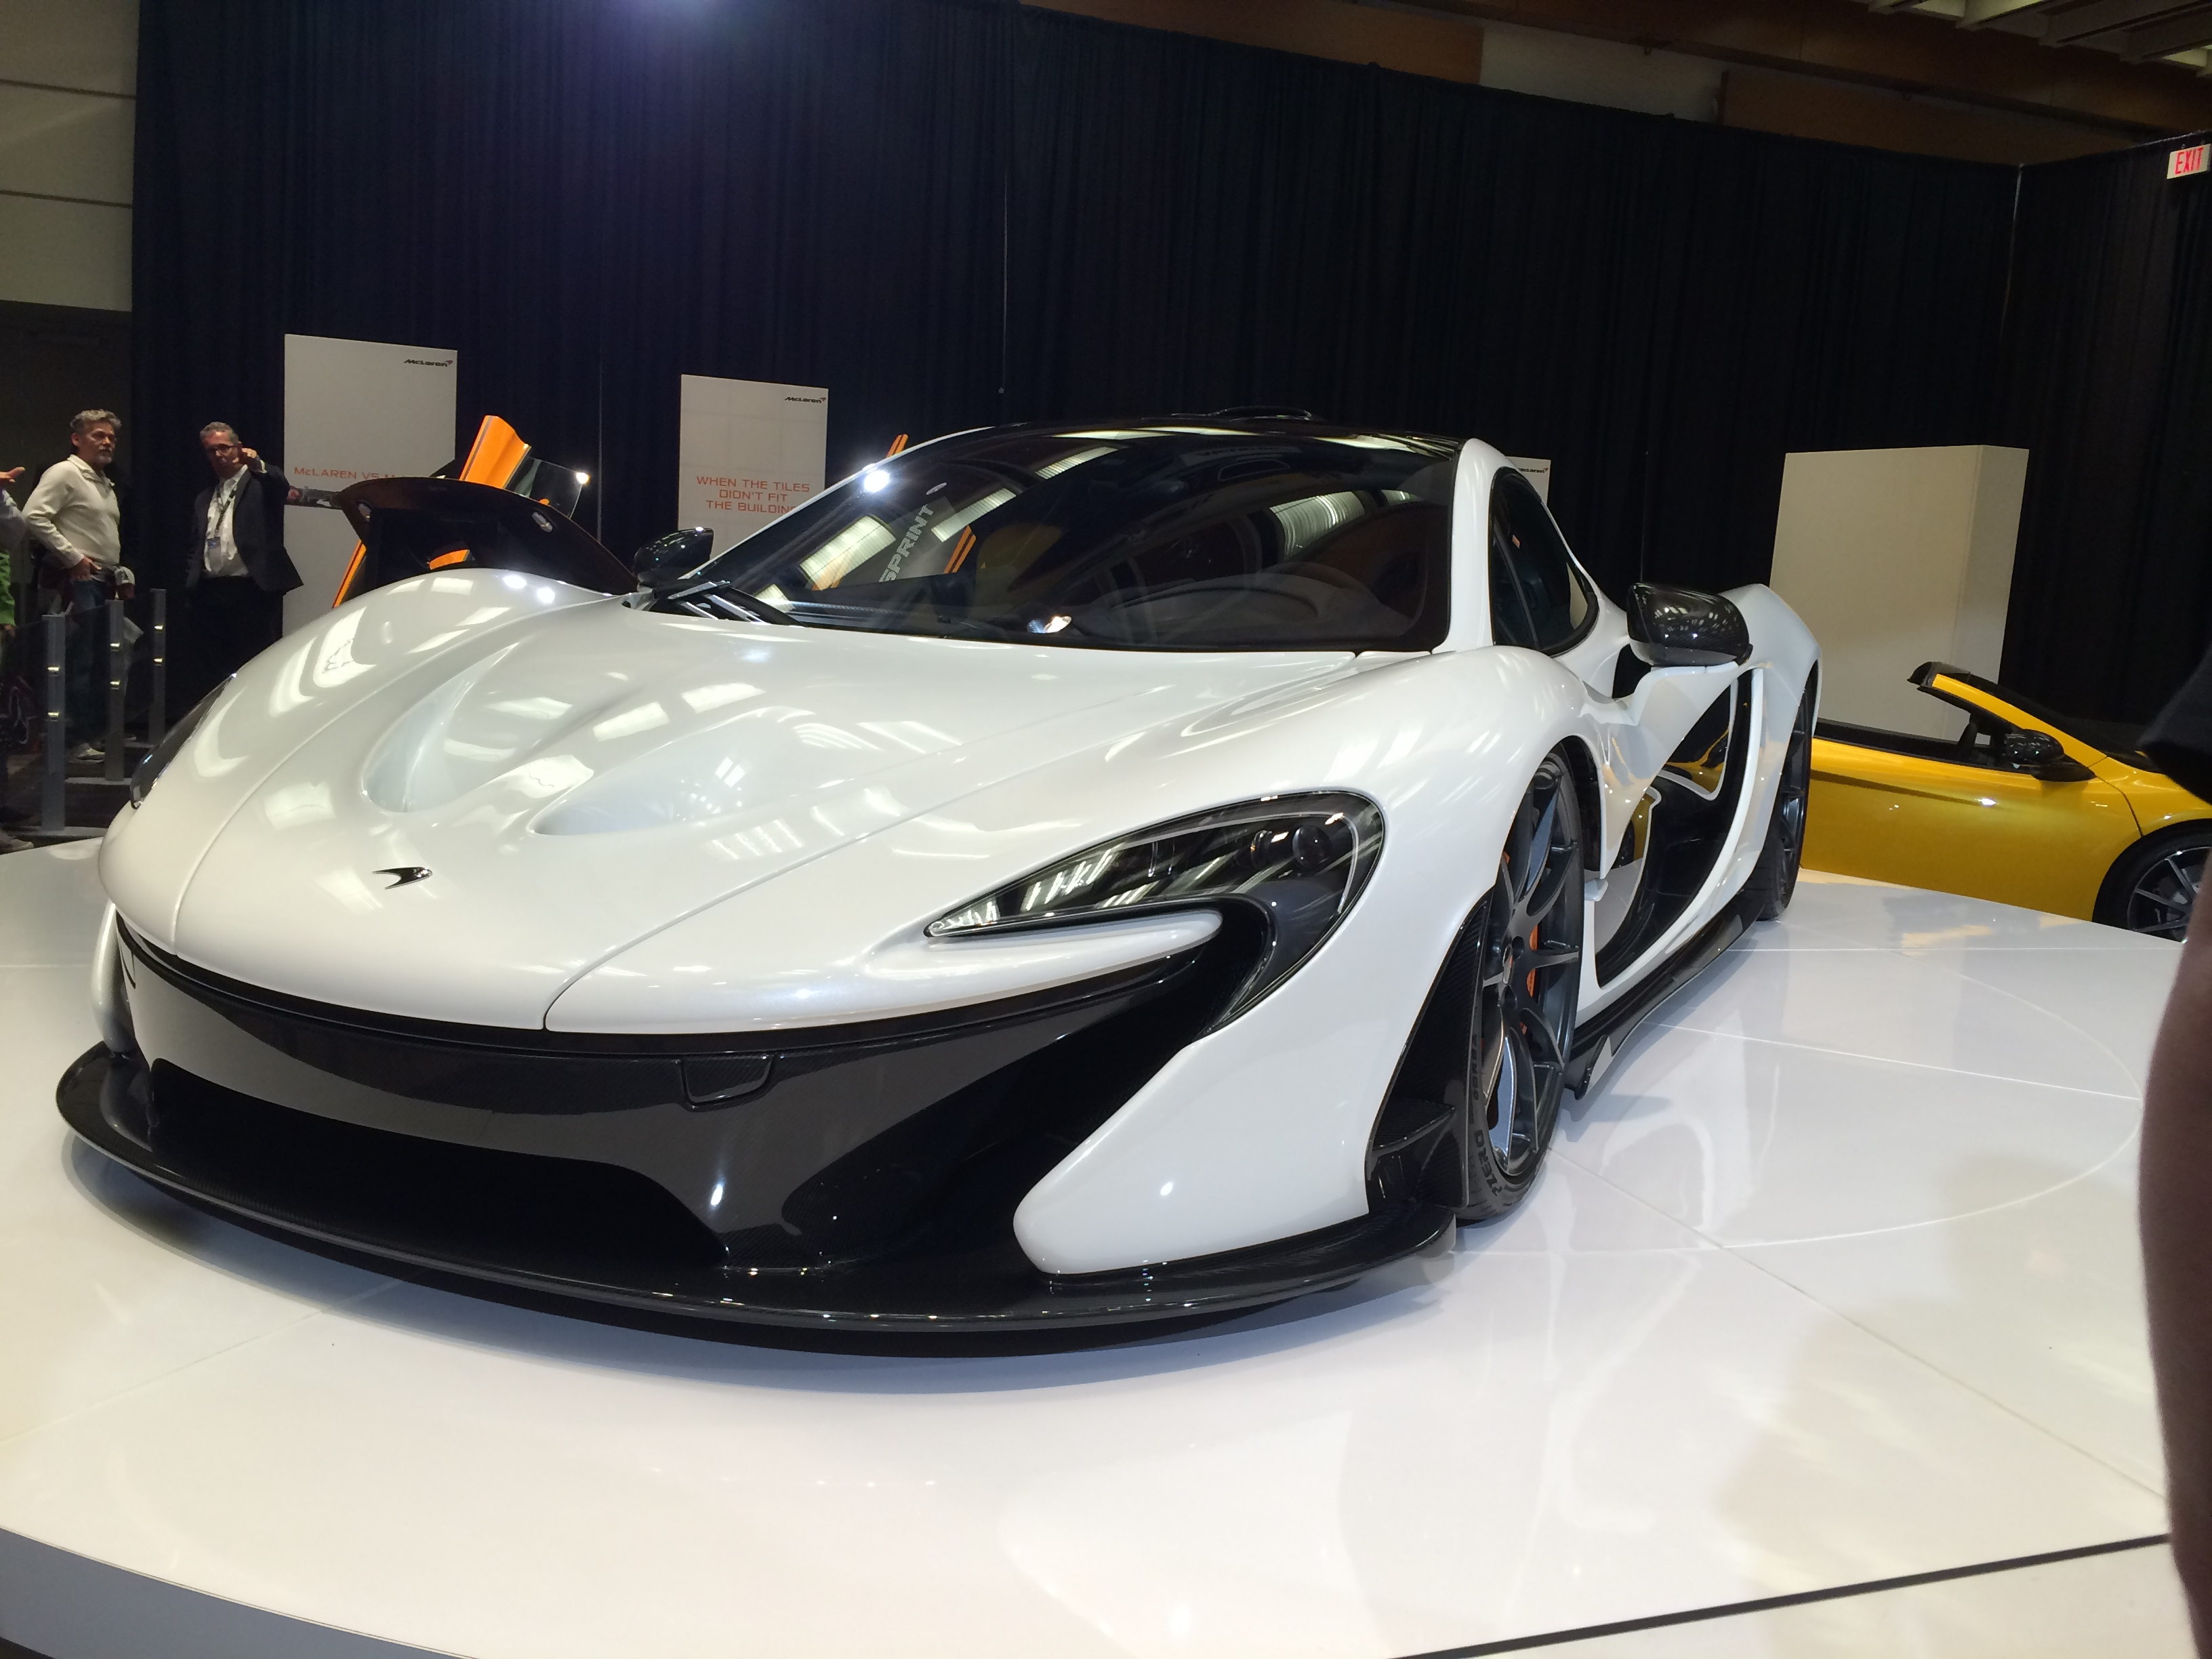 Top 5 Cool Things at the Canadian Int'l Auto Show